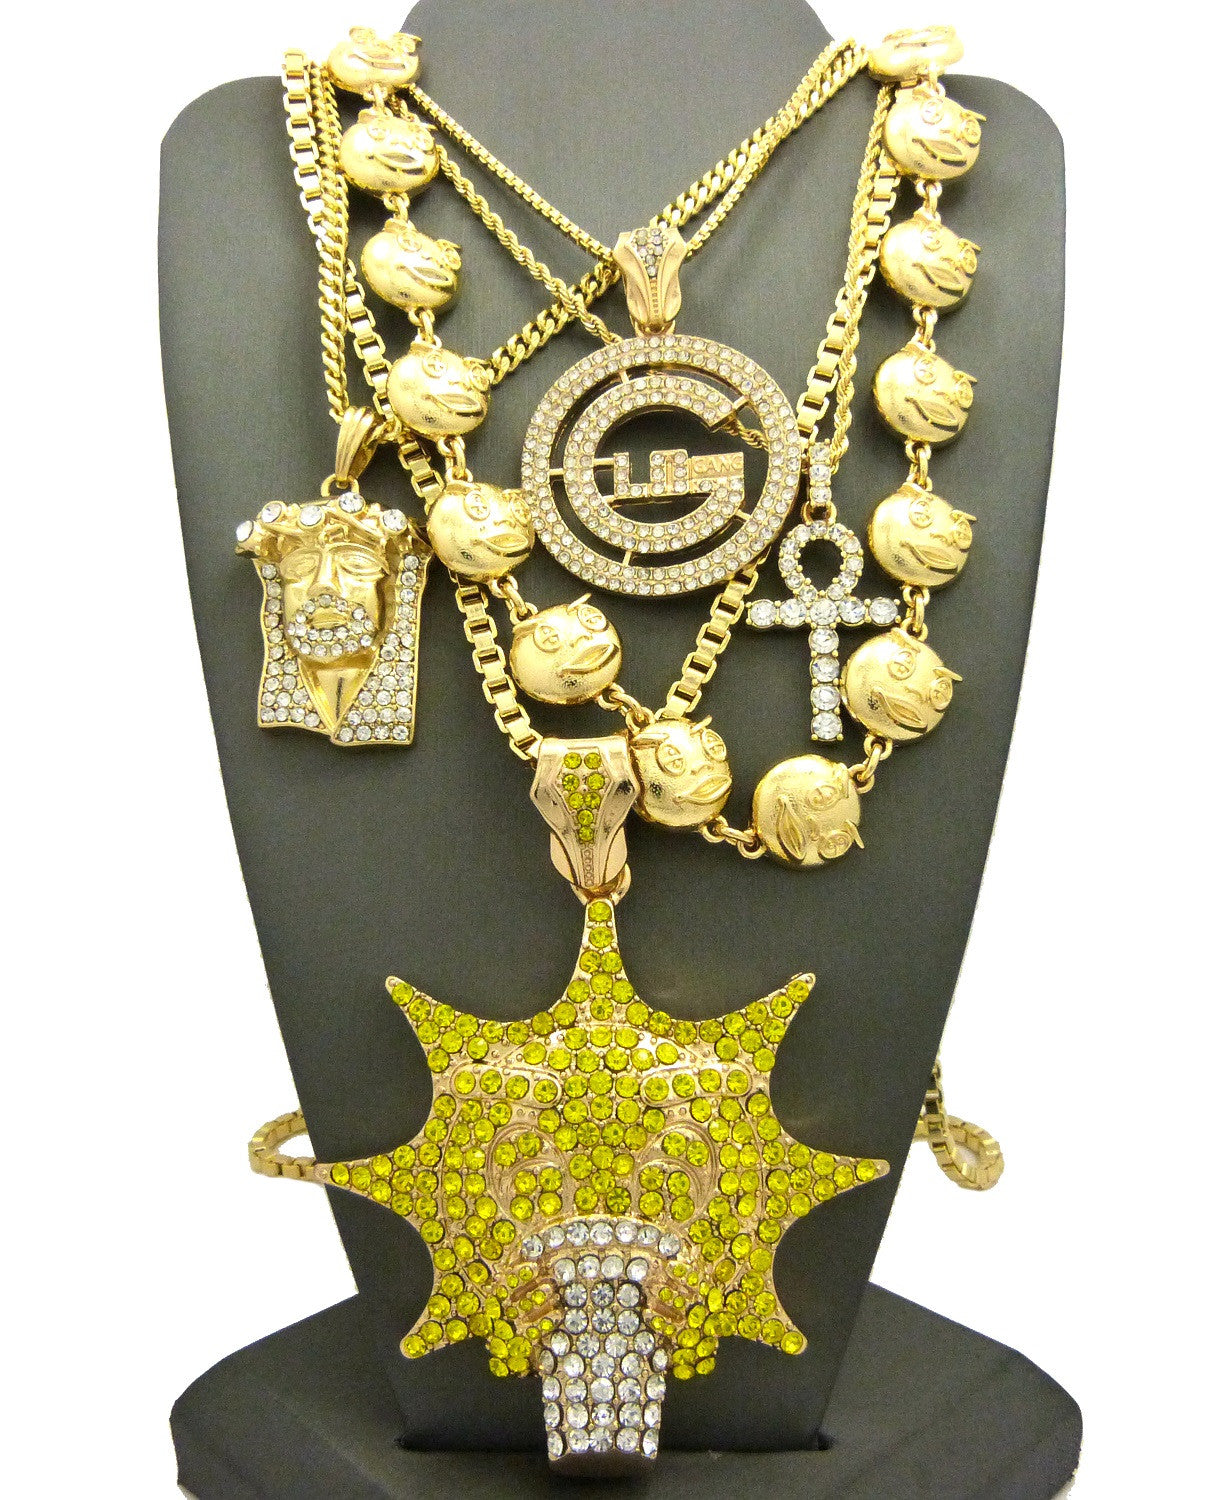 plated chain item accessories yellow jewelry men necklaces s from chains in high snake quality gold for on